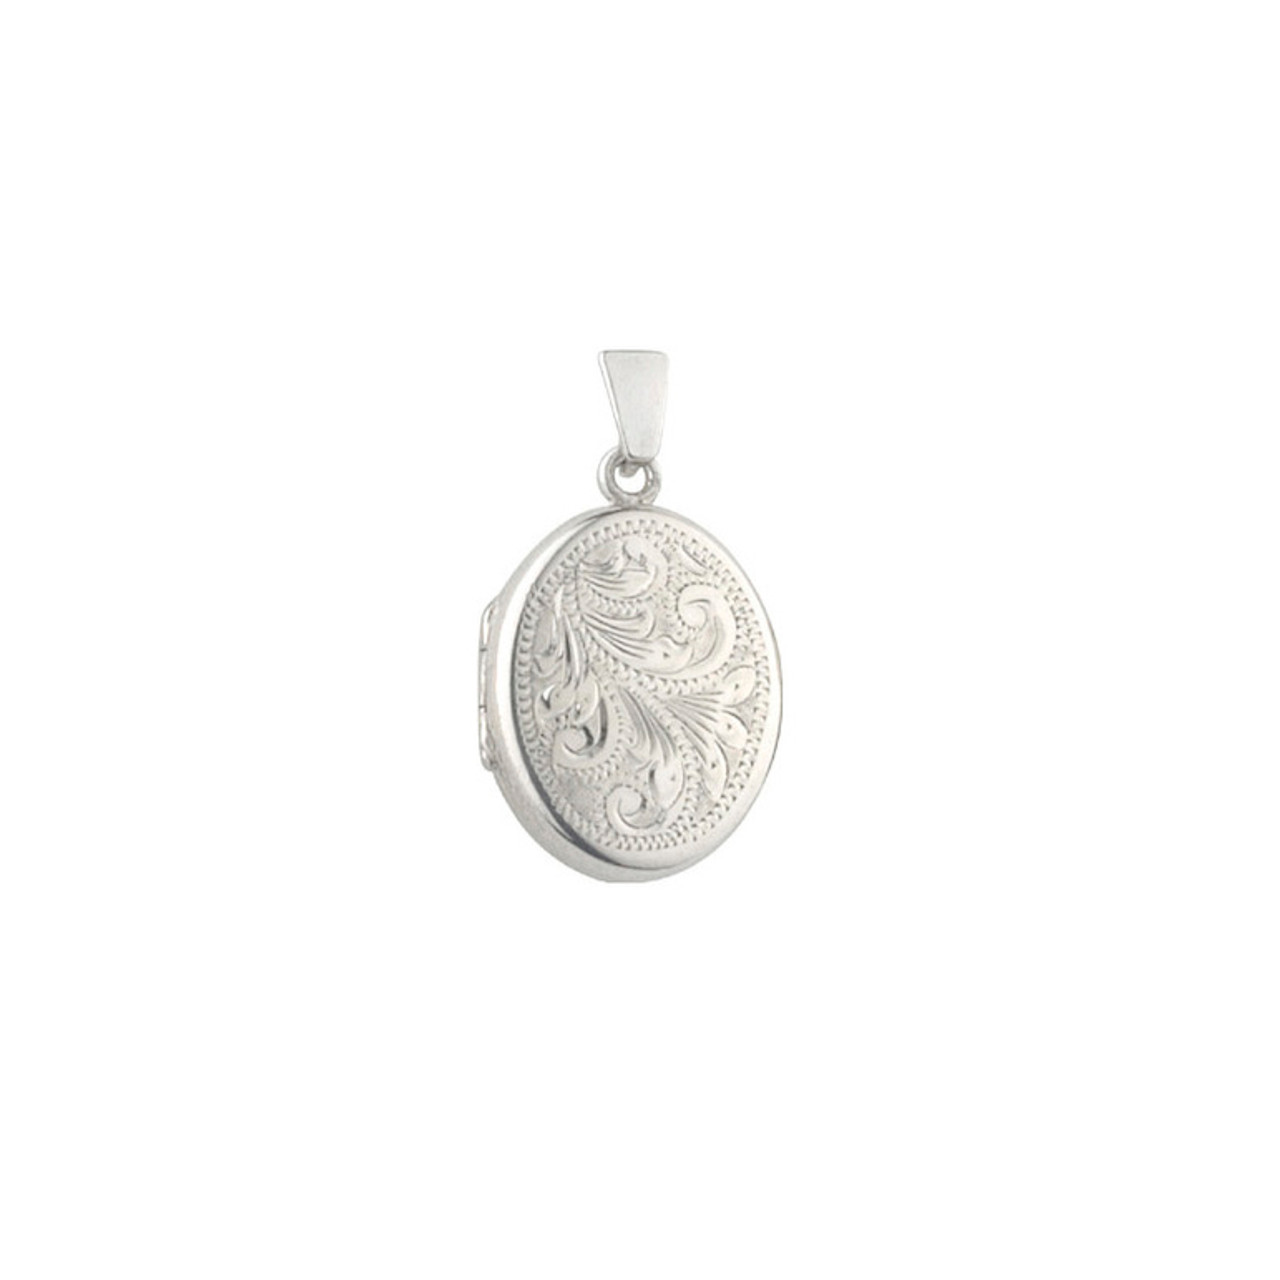 Silver Engraved 20mm Oval Locket & Chain